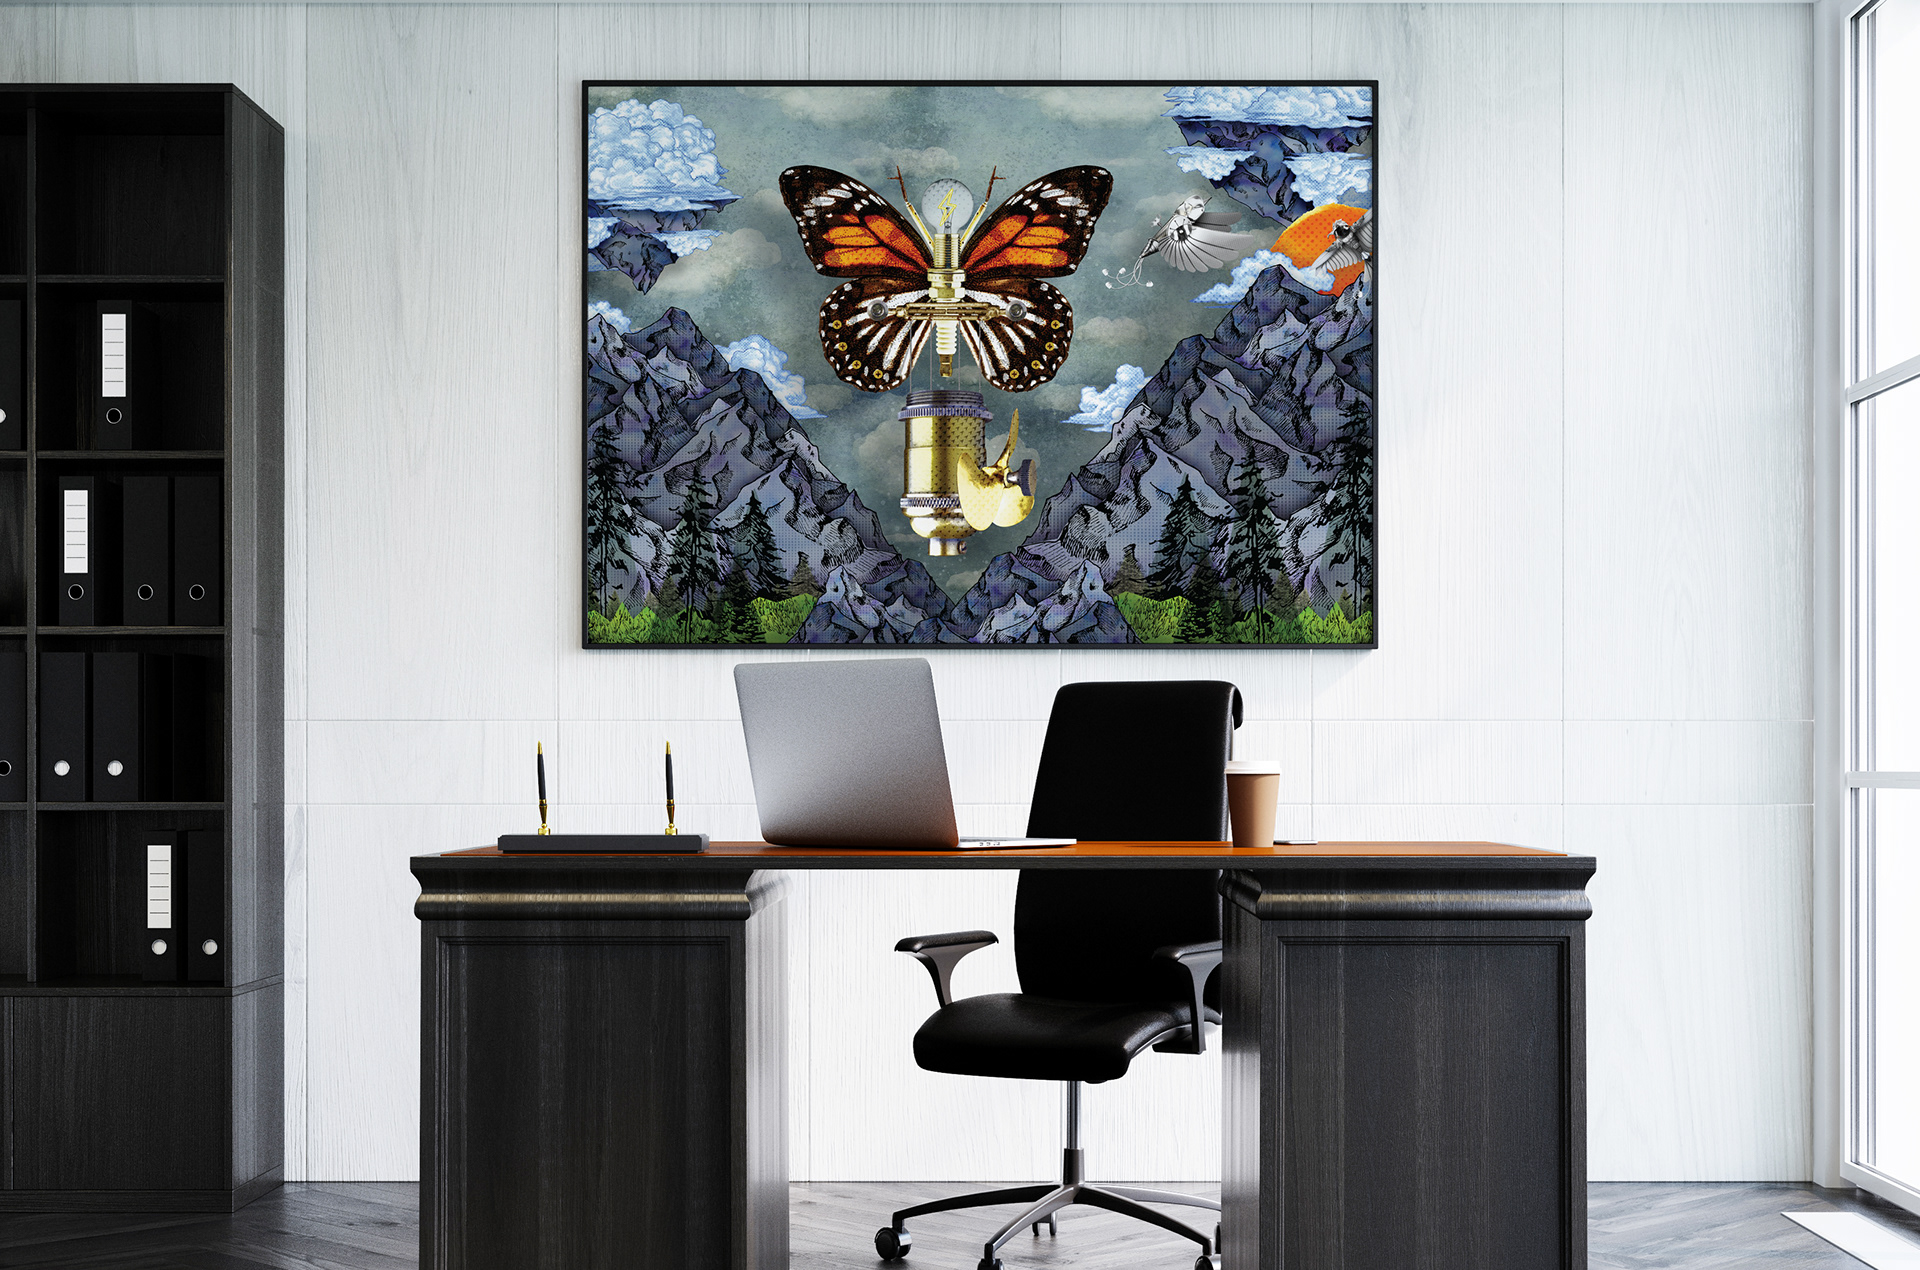 Fantastical Flight Ilrations Printed On Large Canvases For An Office E Interior In Tech Town Dayton Ohio